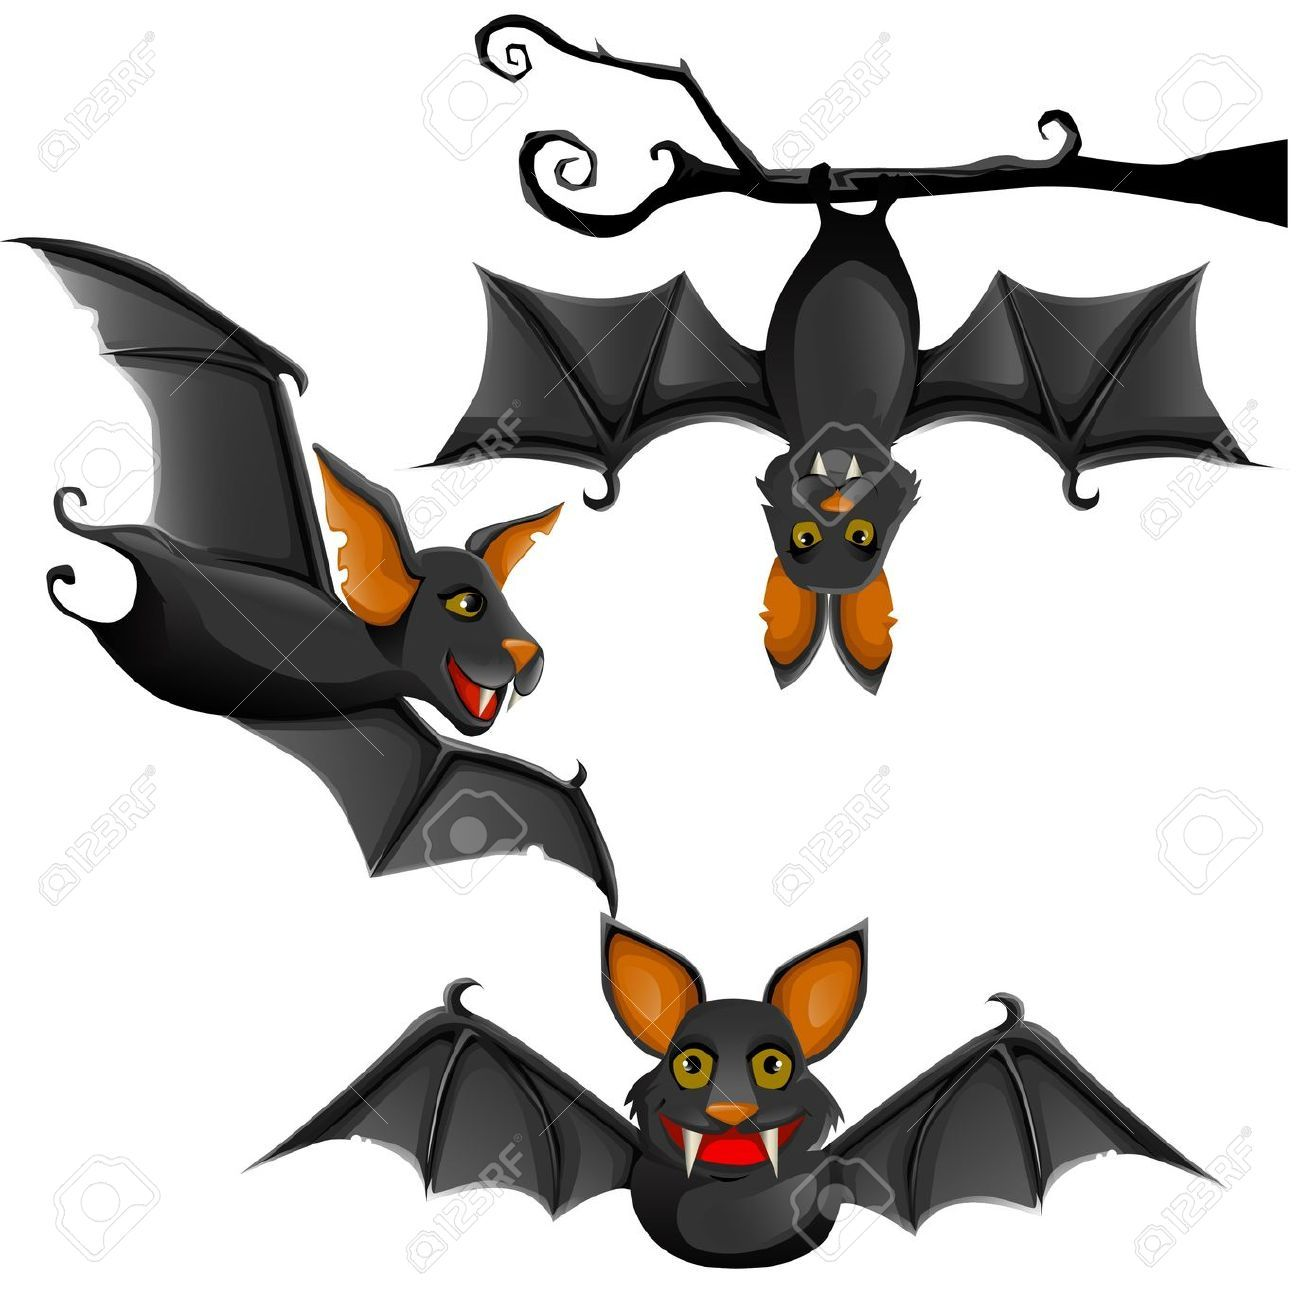 Image result for cute cartoon bats | Cartoon bat, Cute ...